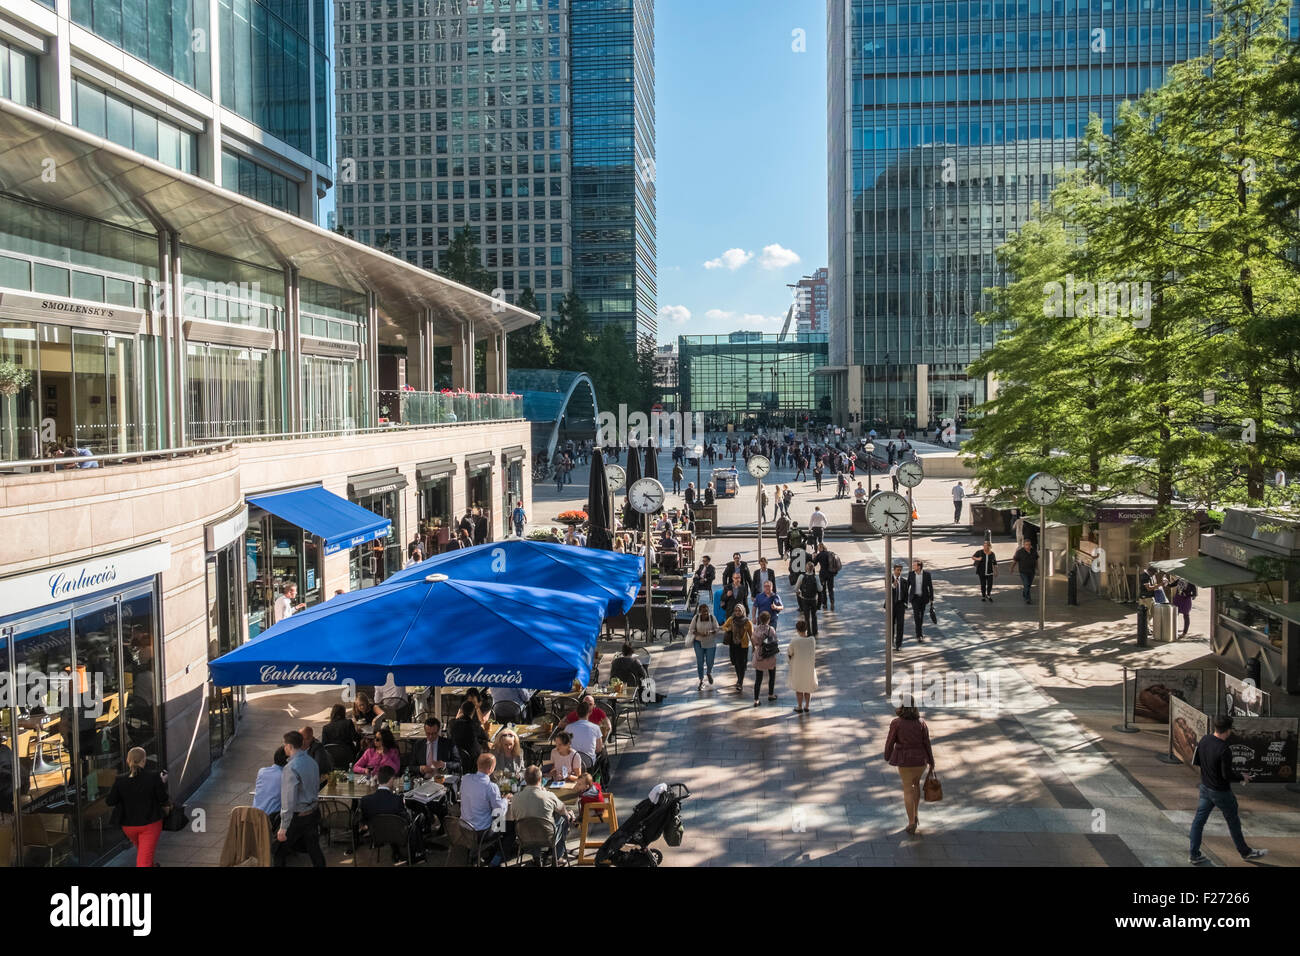 Pedestrianised area of Reuters Plaza, Canary Wharf financial district, London, England UK - Stock Image